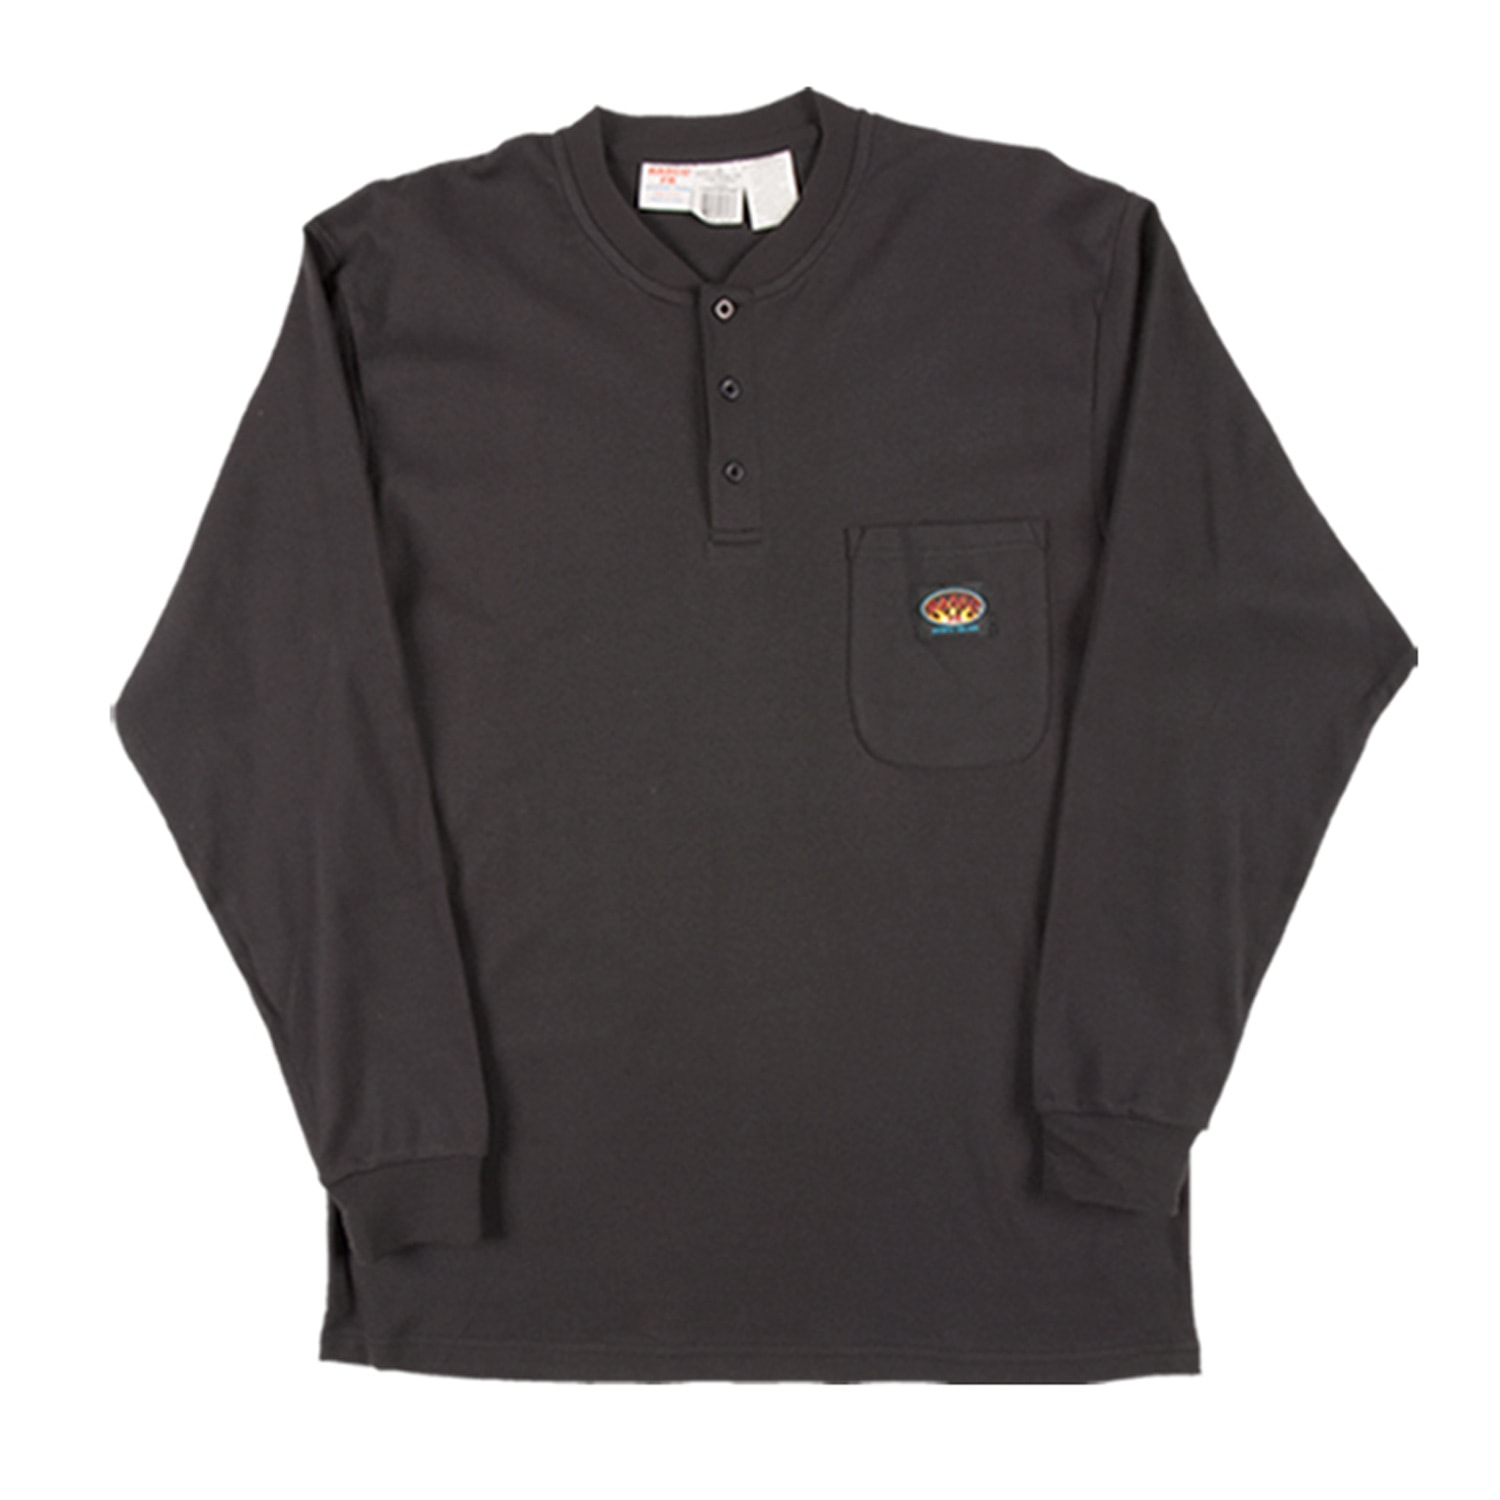 Rasco Fire Retardant Black Henley T-Shirt